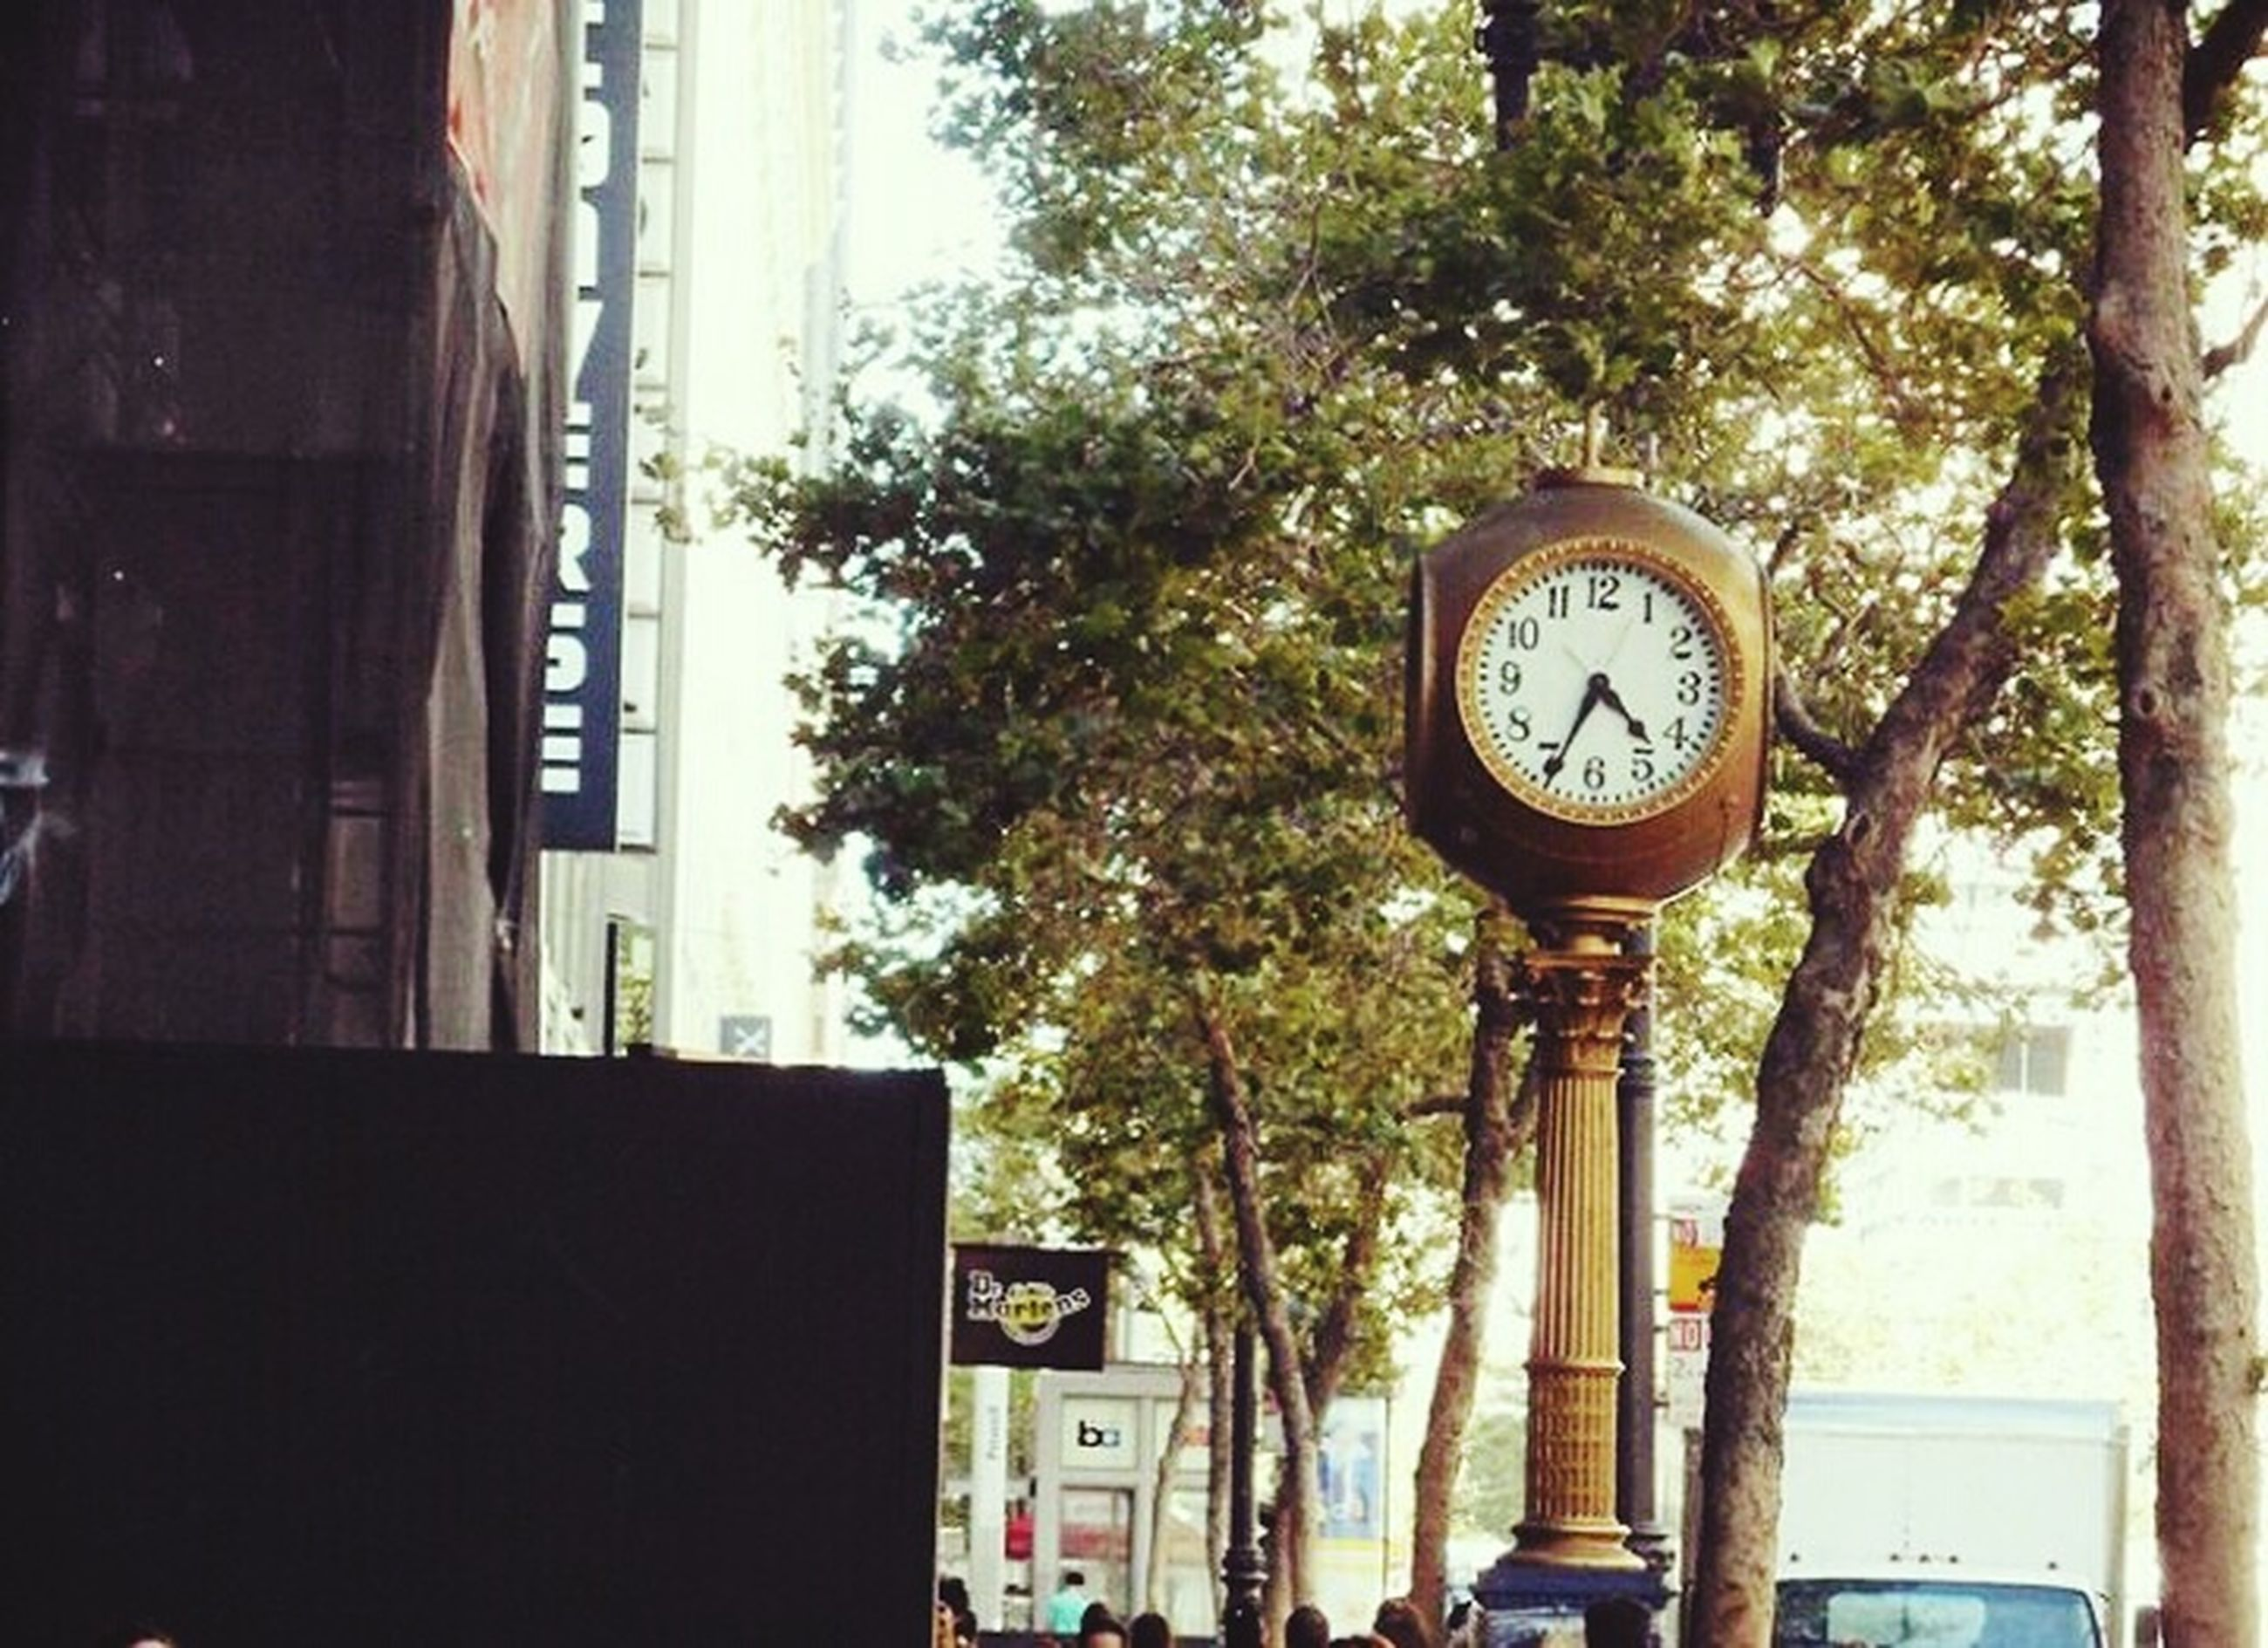 clock, time, tree, low angle view, instrument of time, no people, clock face, day, outdoors, minute hand, hour hand